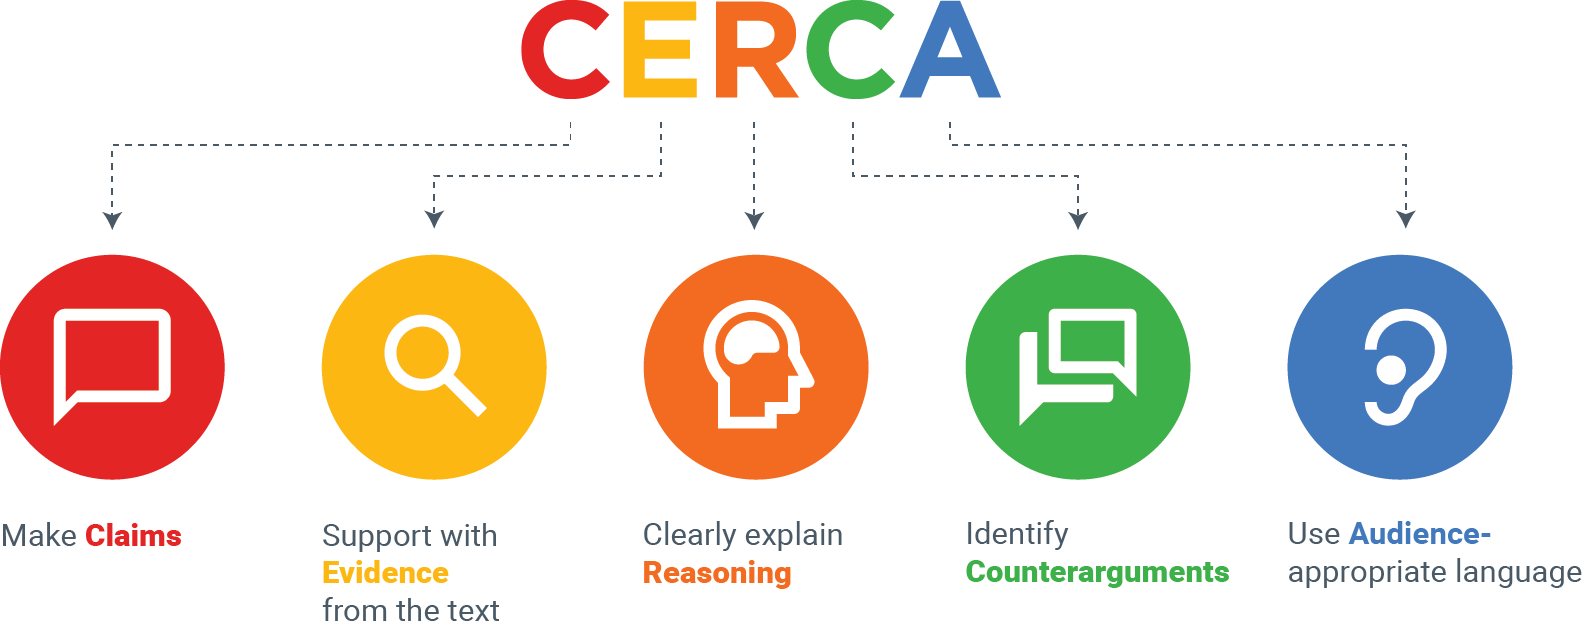 CERCA_graphic_horizontal_explained.png